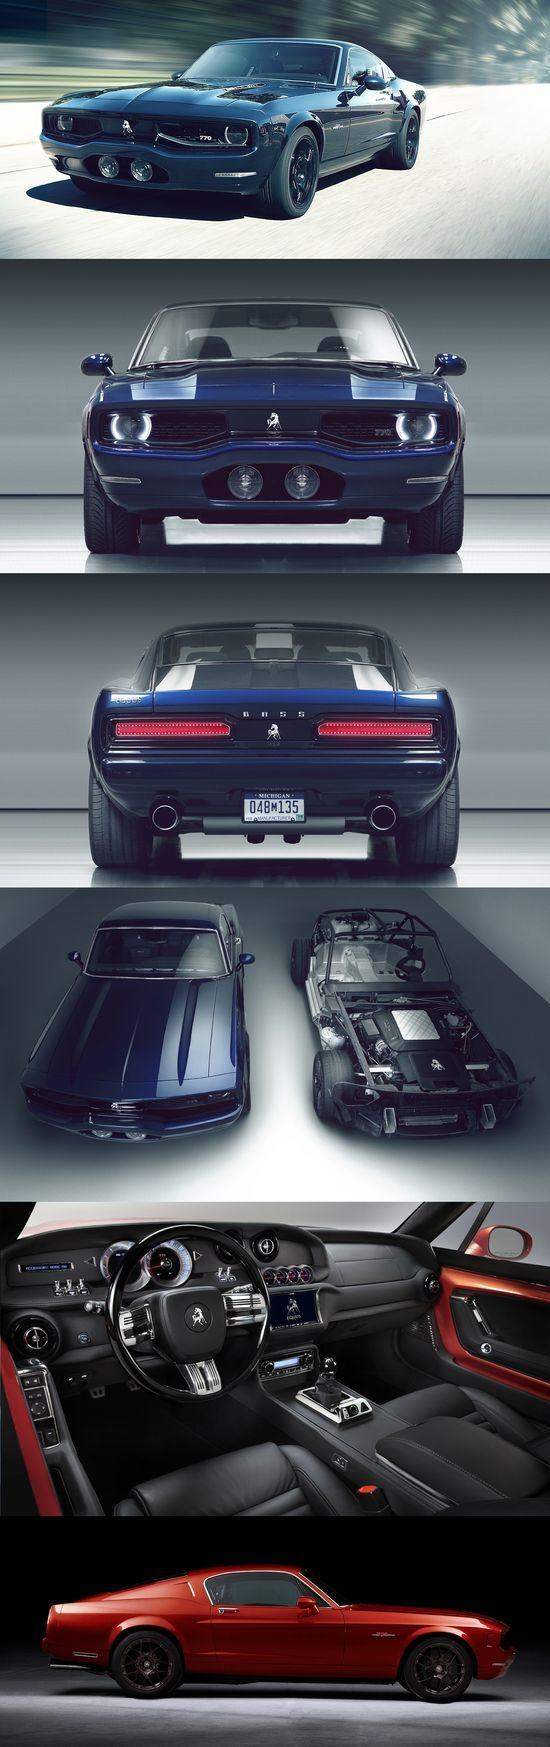 Equus Bass 770: The Ridiculous $250,000 Muscle Car For The 21st Century Badboy! Are you man enough? Hit the pic to find   http://sport-car-collections.lemoncoin.org